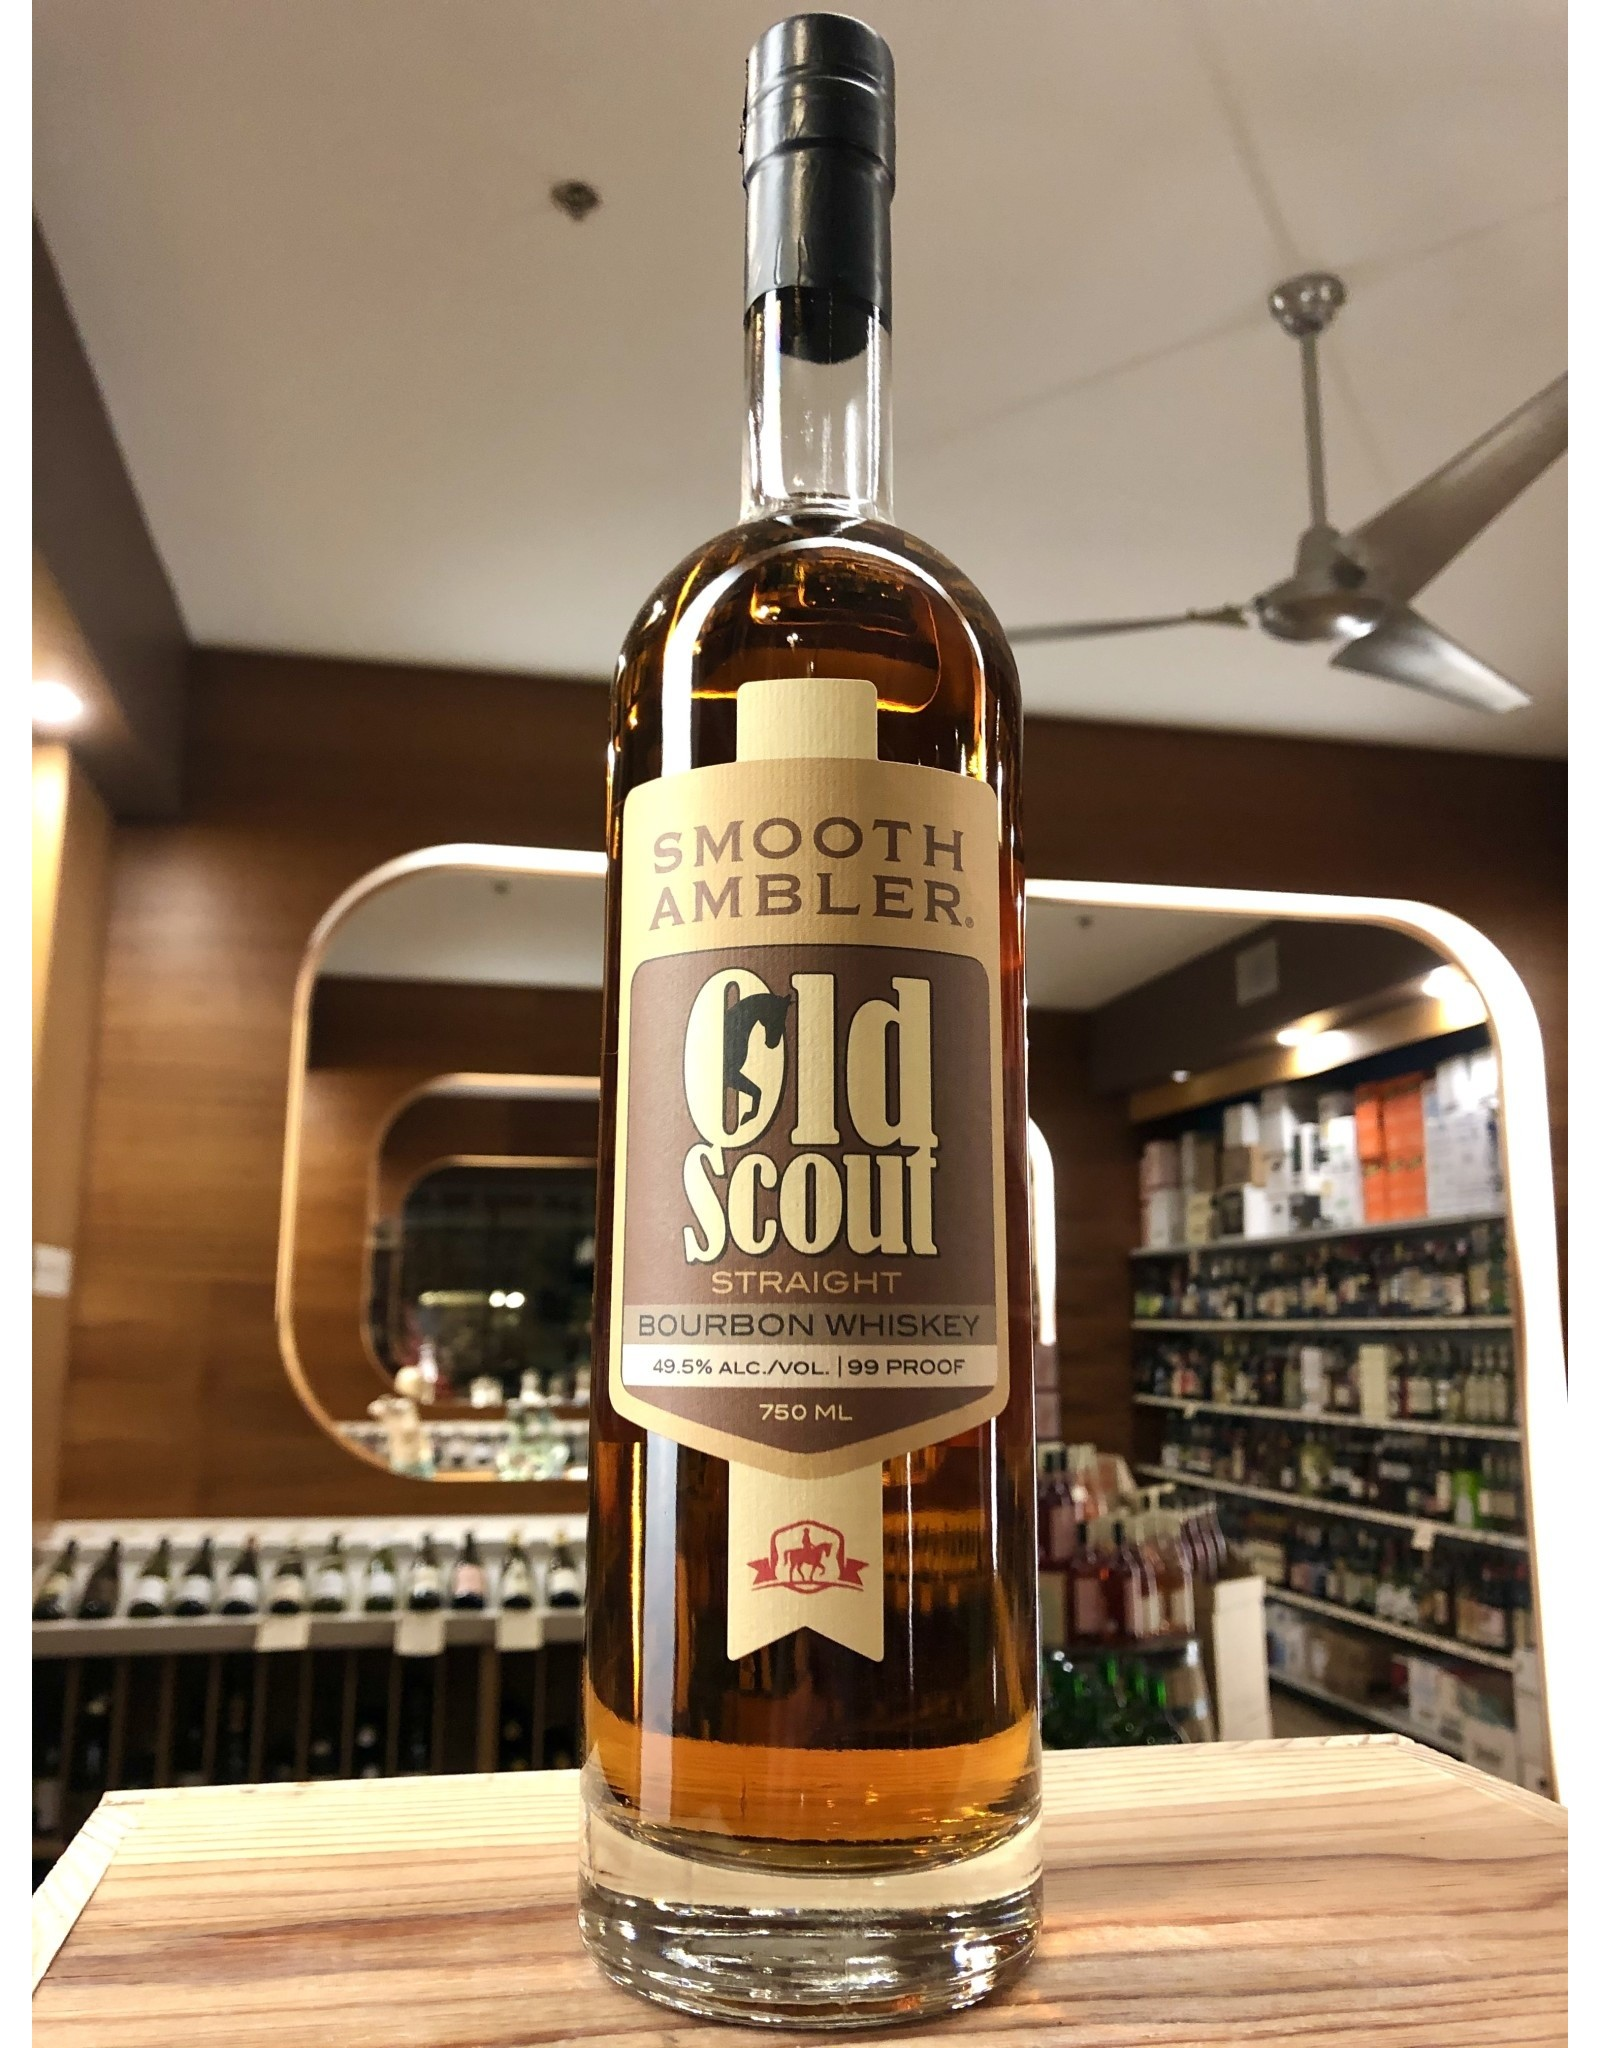 Smooth Ambler Old Scout Bourbon - 750 ML